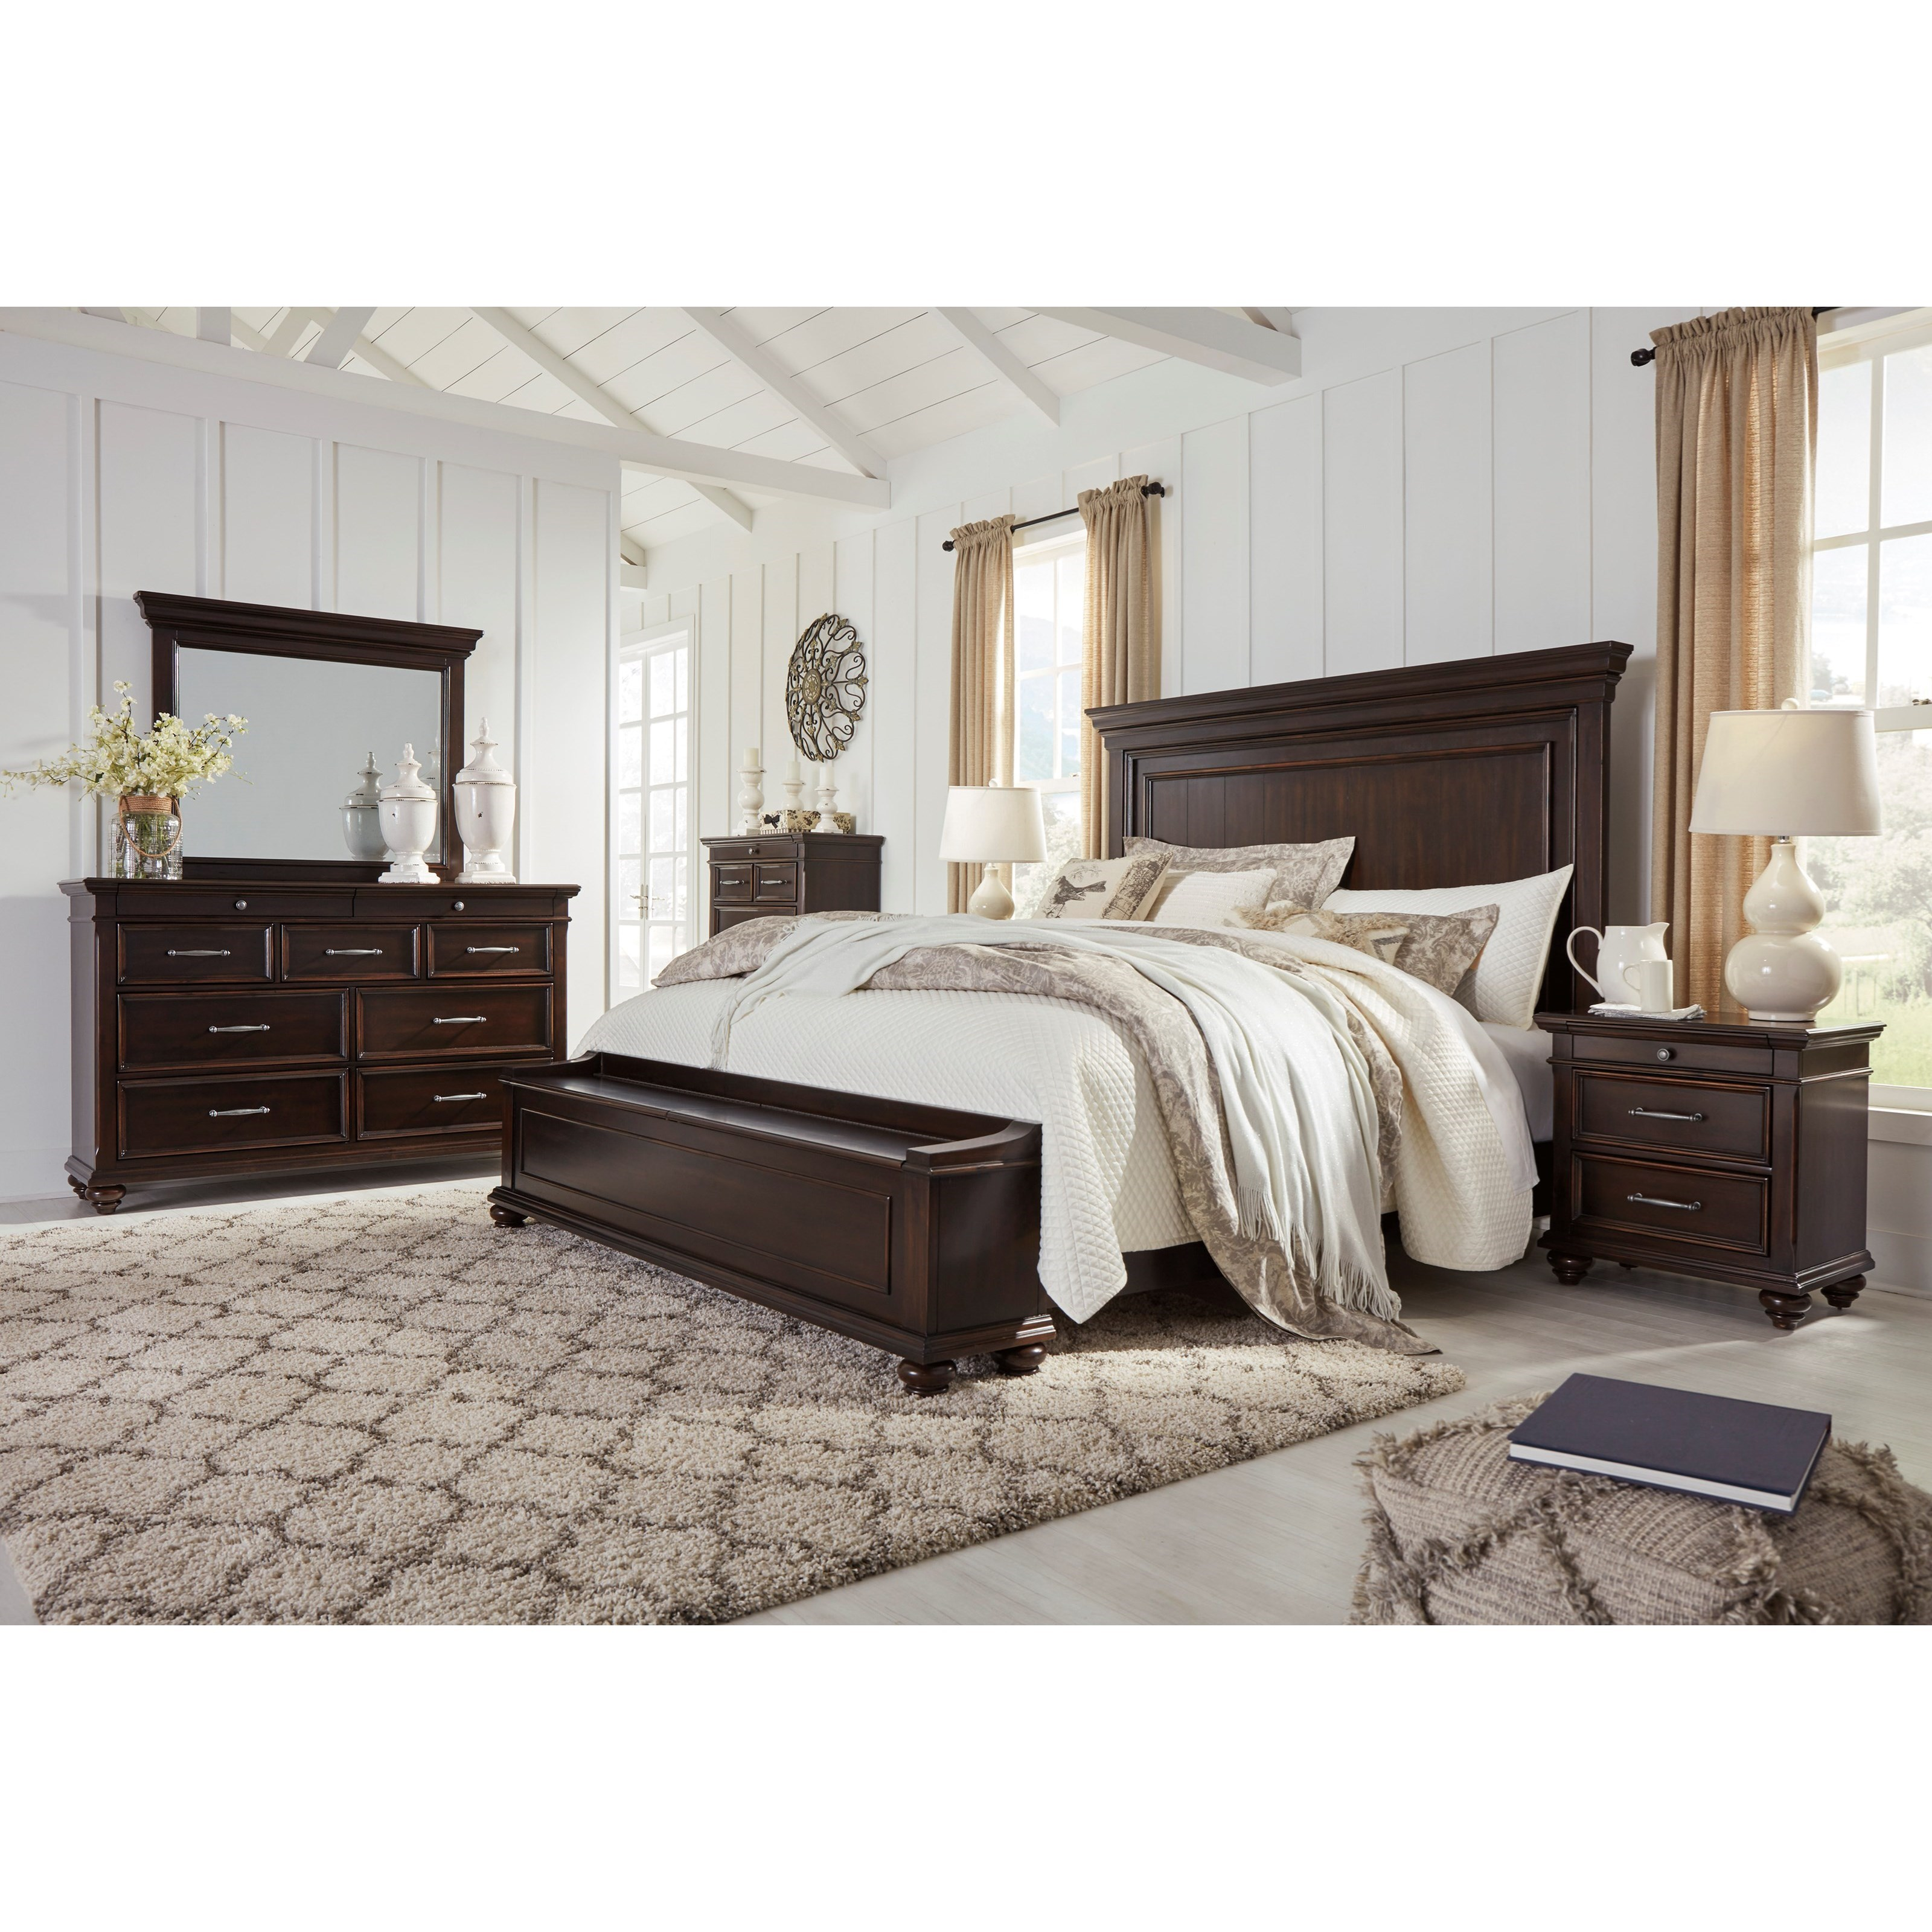 Brynhurst King Bedroom Group by Signature Design by Ashley at Standard Furniture